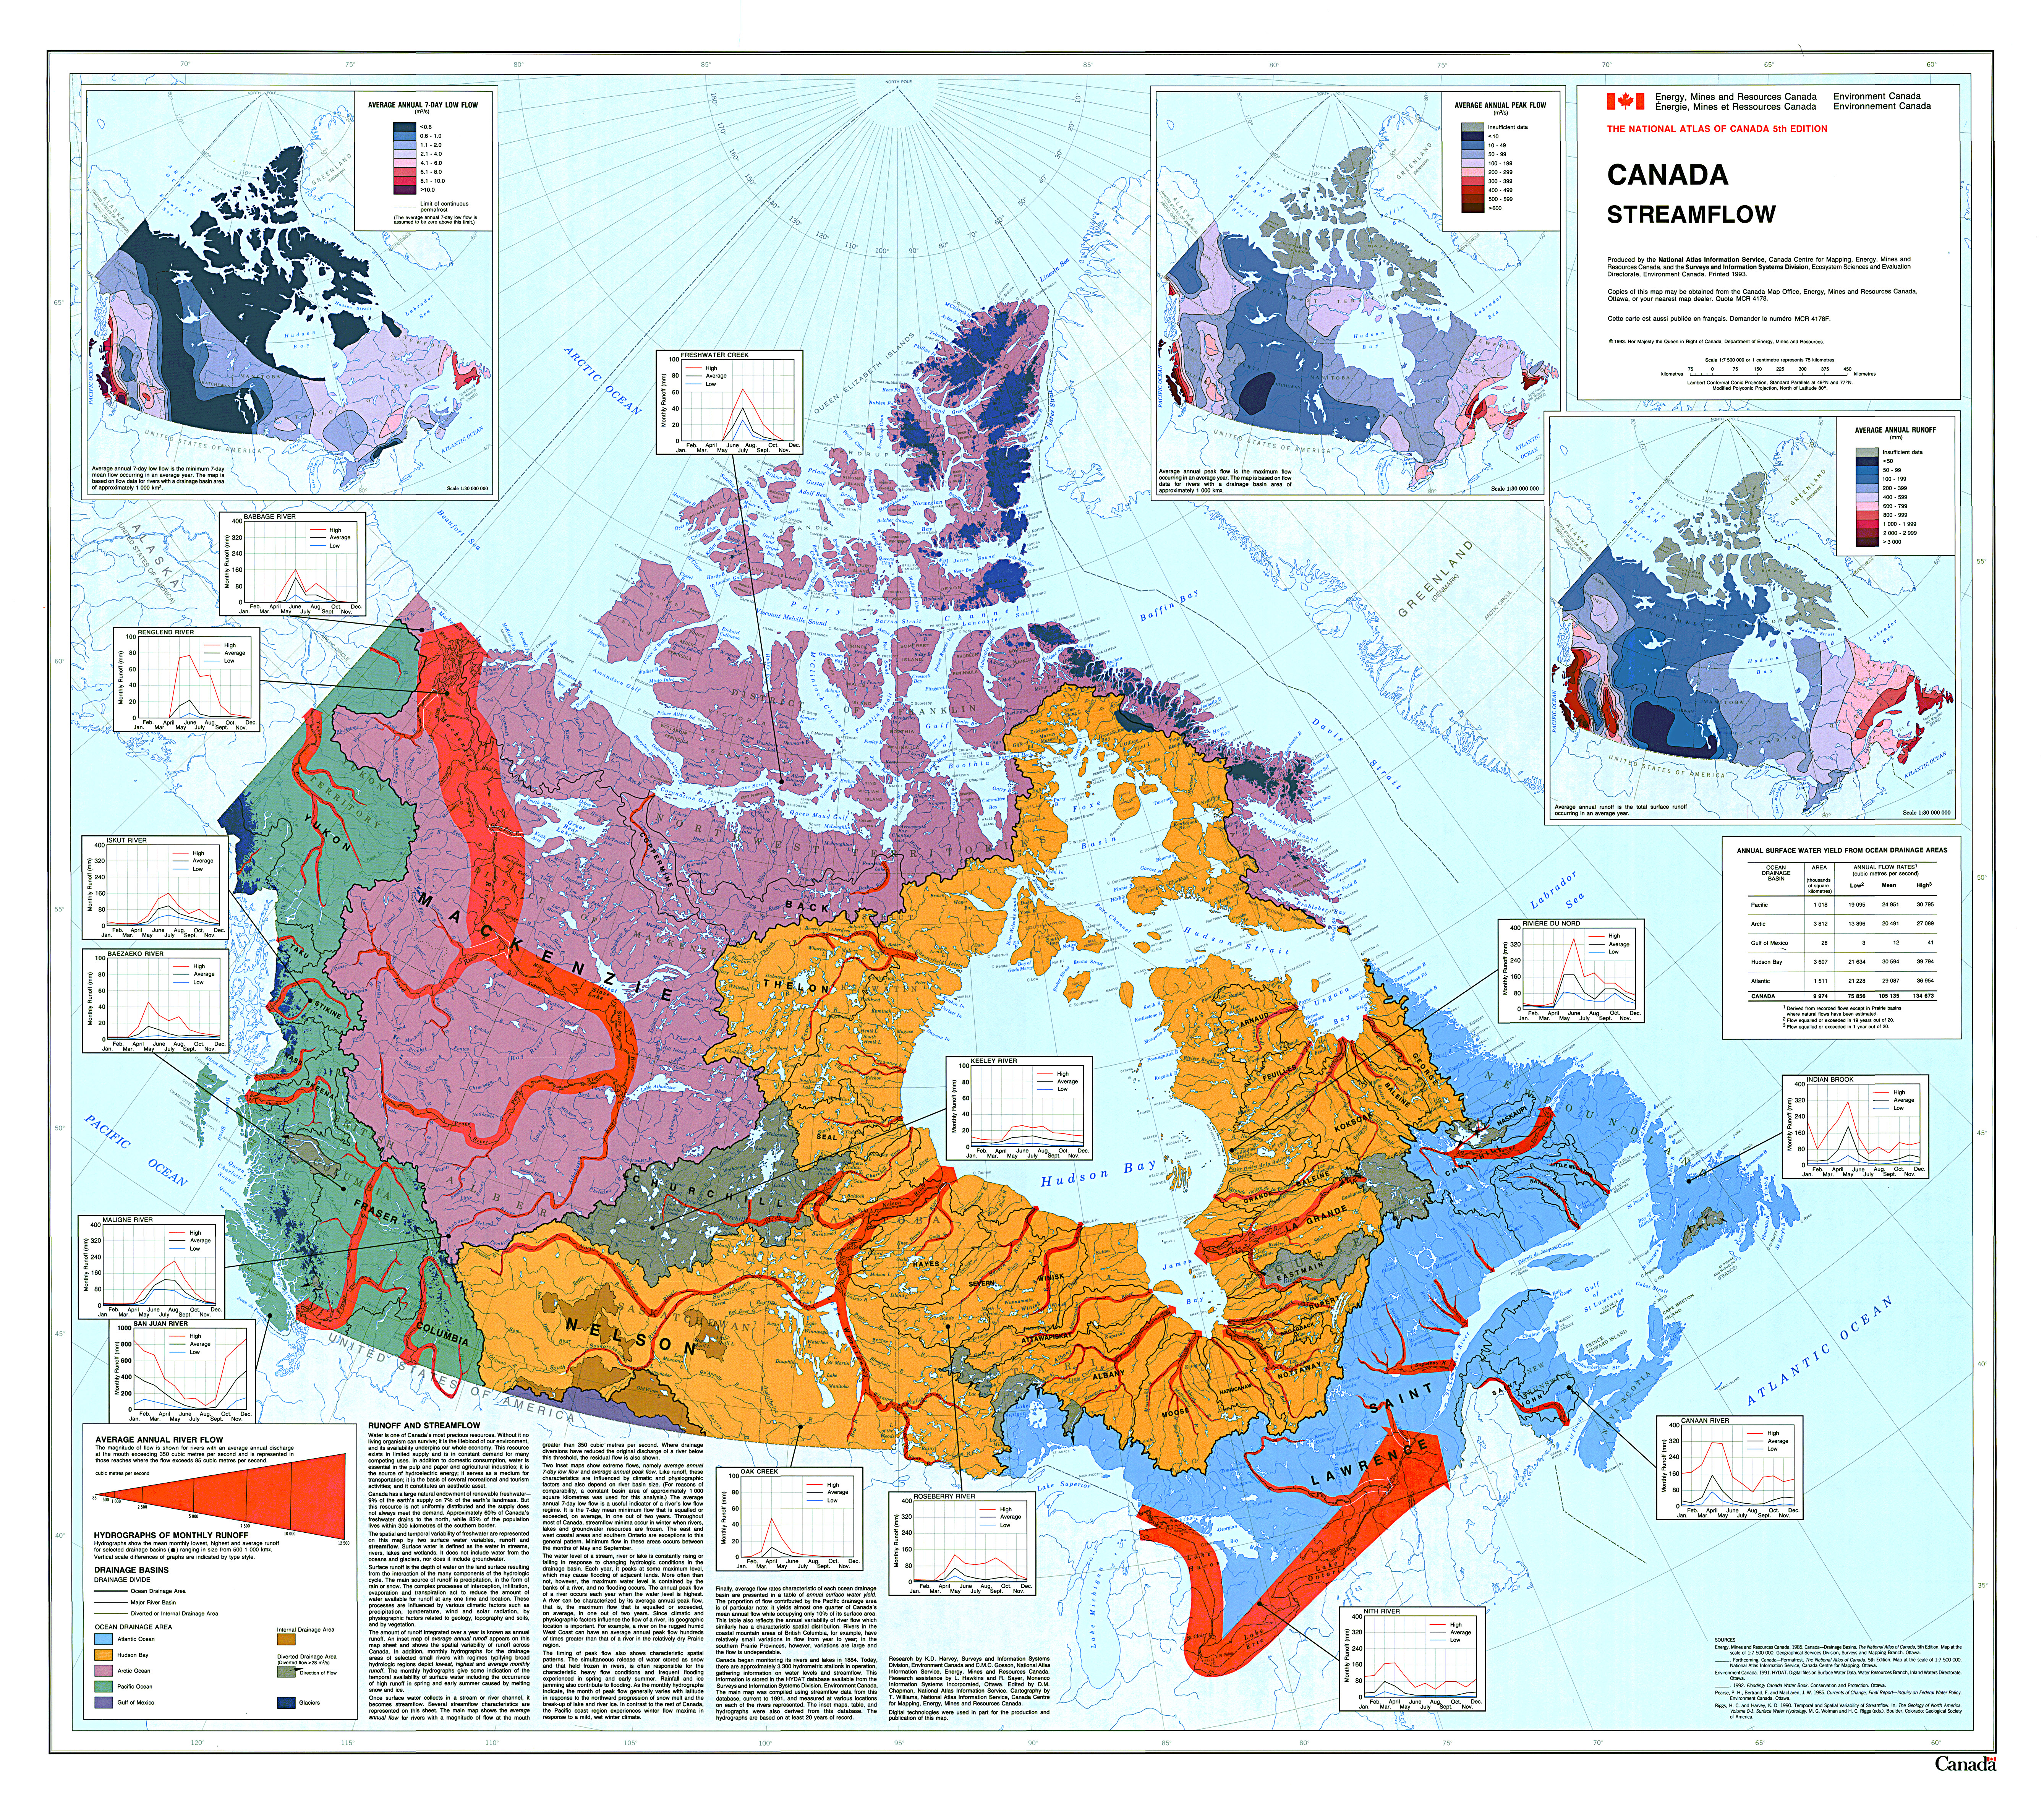 Canadian watersheds - Vivid Maps